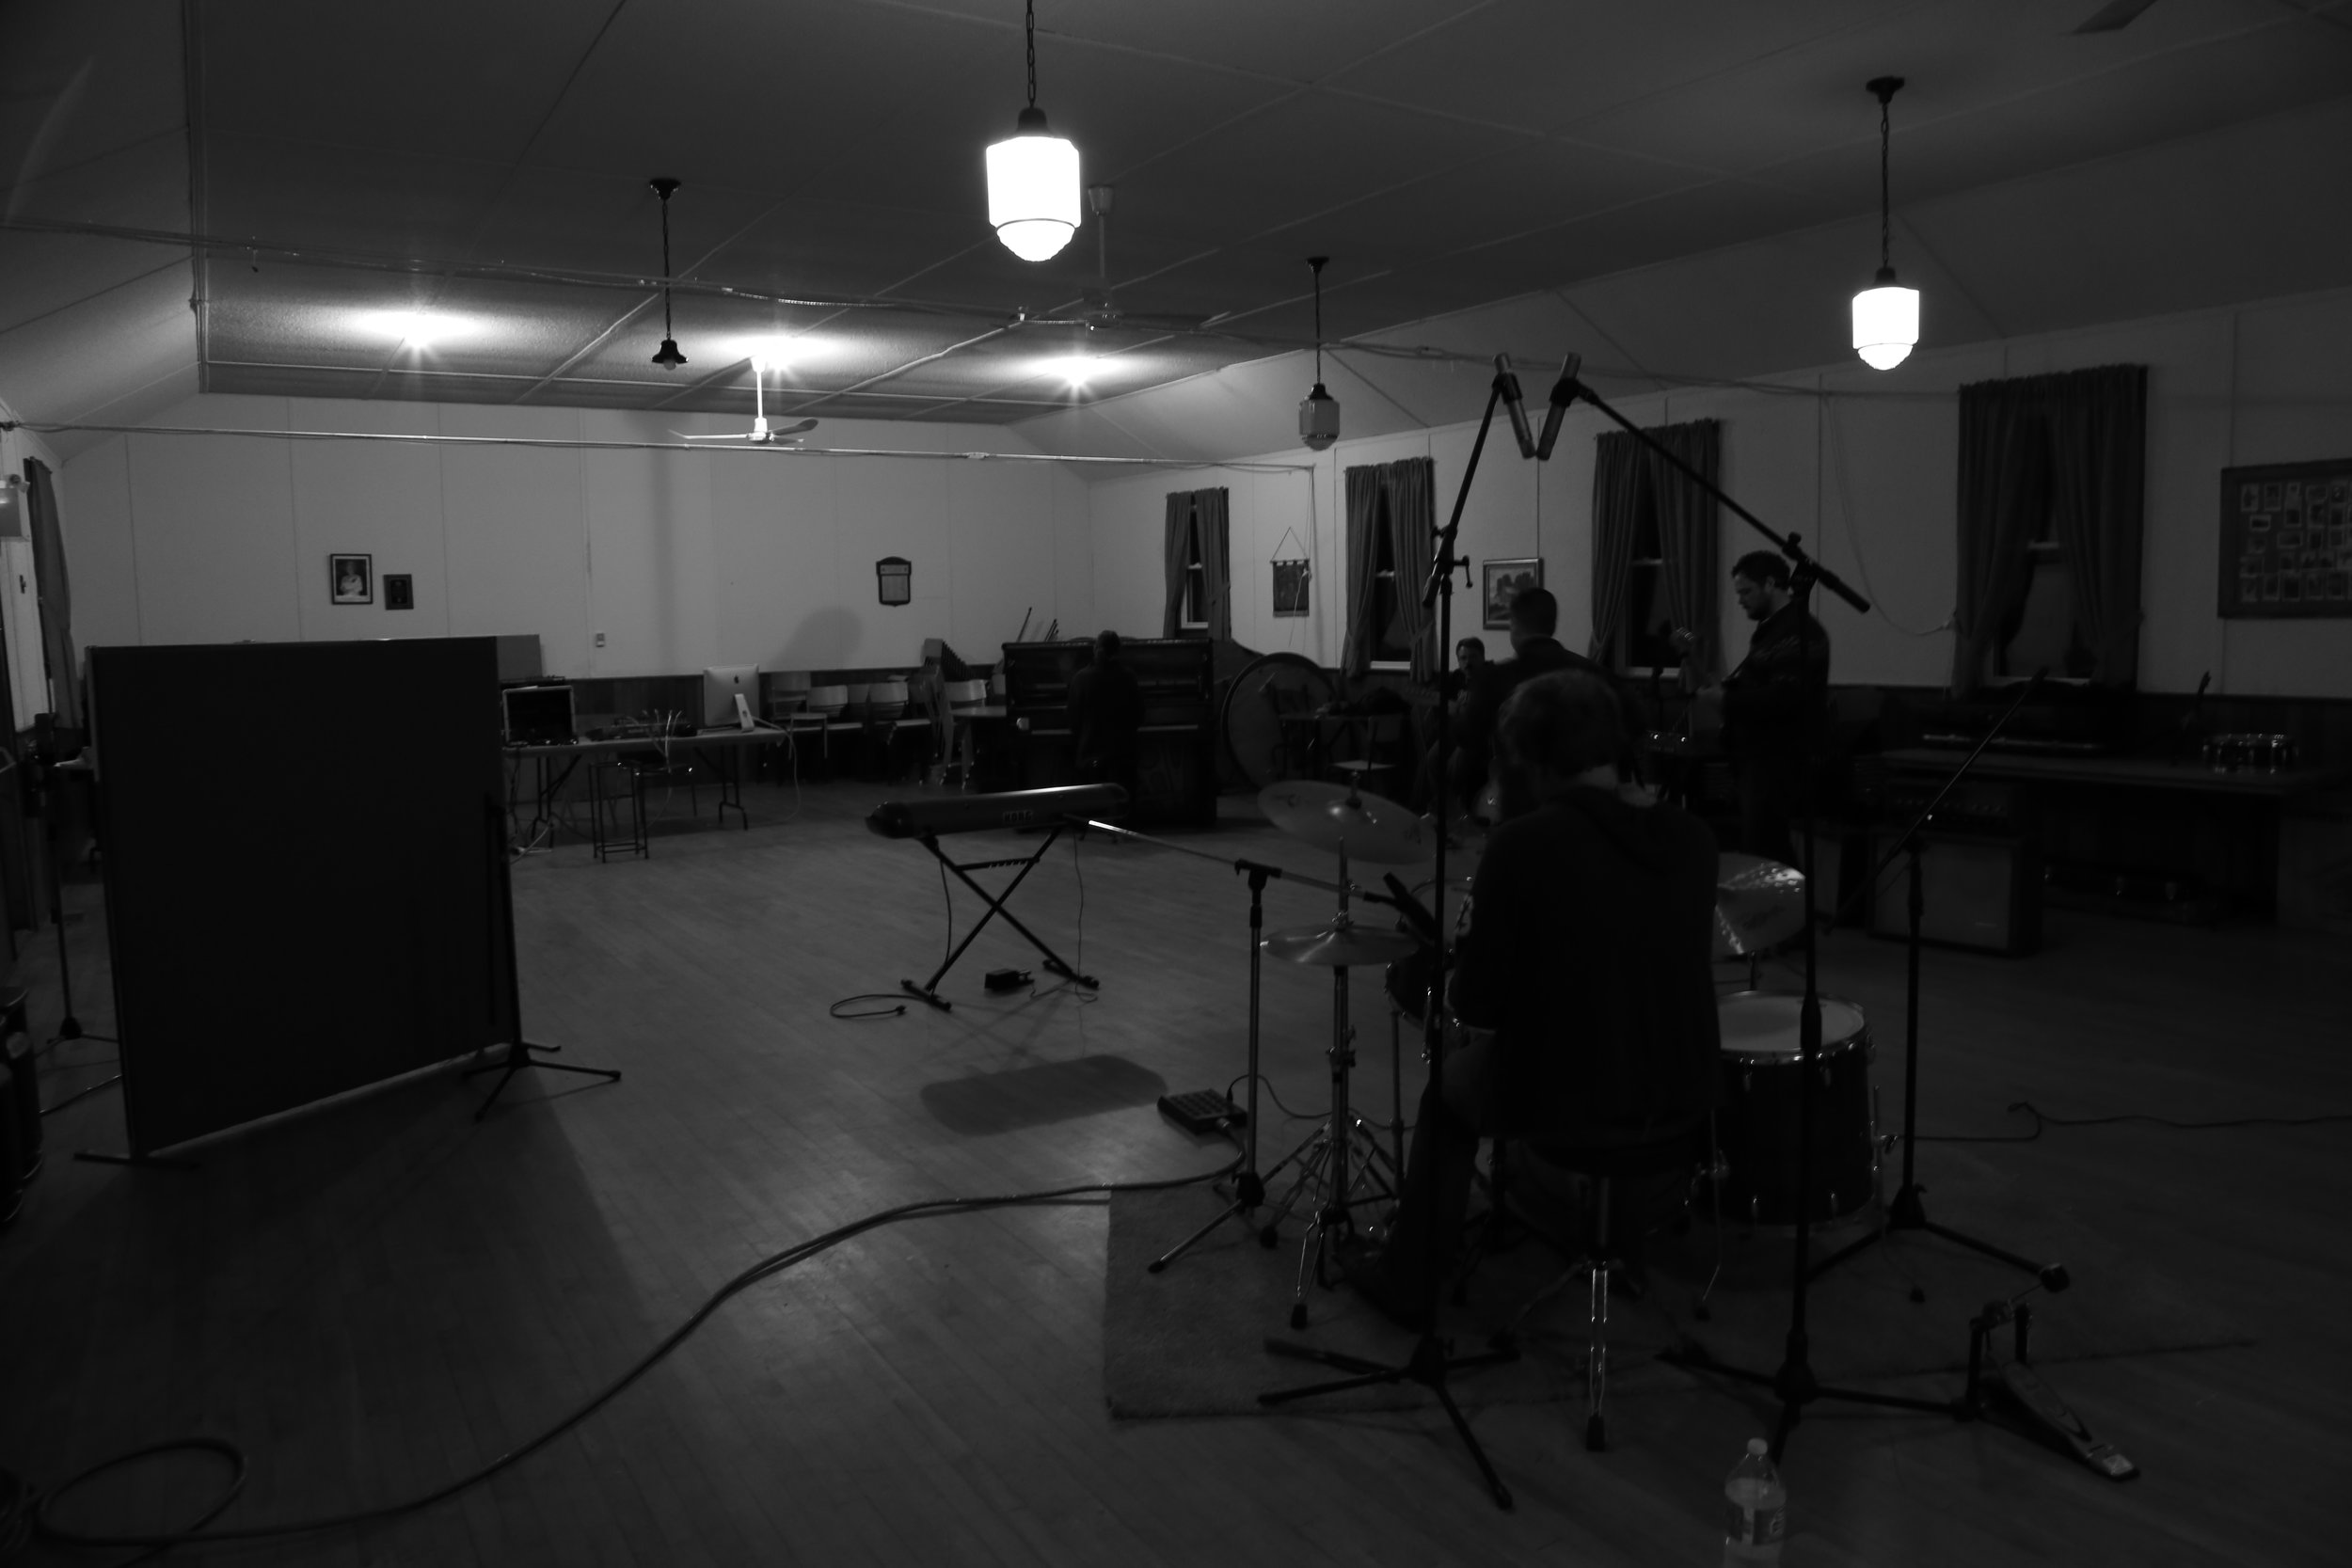 Musicians, dancers, performance artists, visual artists, and yoga practices find extra space in our nearby historic Hall